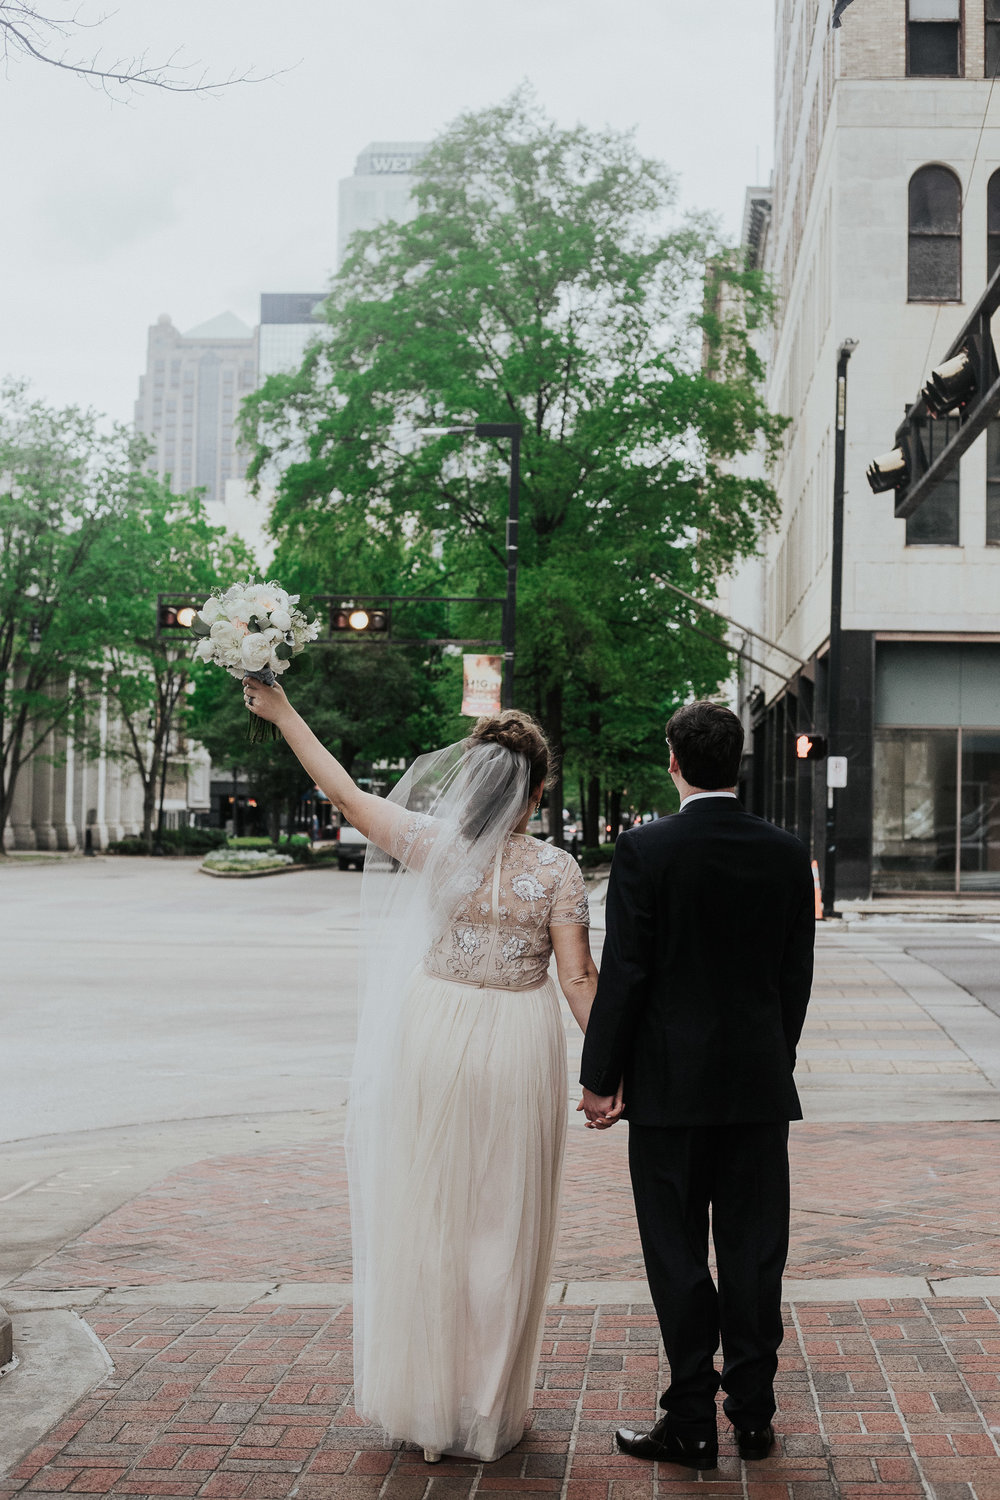 Birmingham, Alabama wedding photography at the Elyton Hotel, In the Making, and Galley and Garden by David A. Smith of DSmithImages Wedding Photography, Portraits, and Events, a Birmingham, Alabama wedding photographer